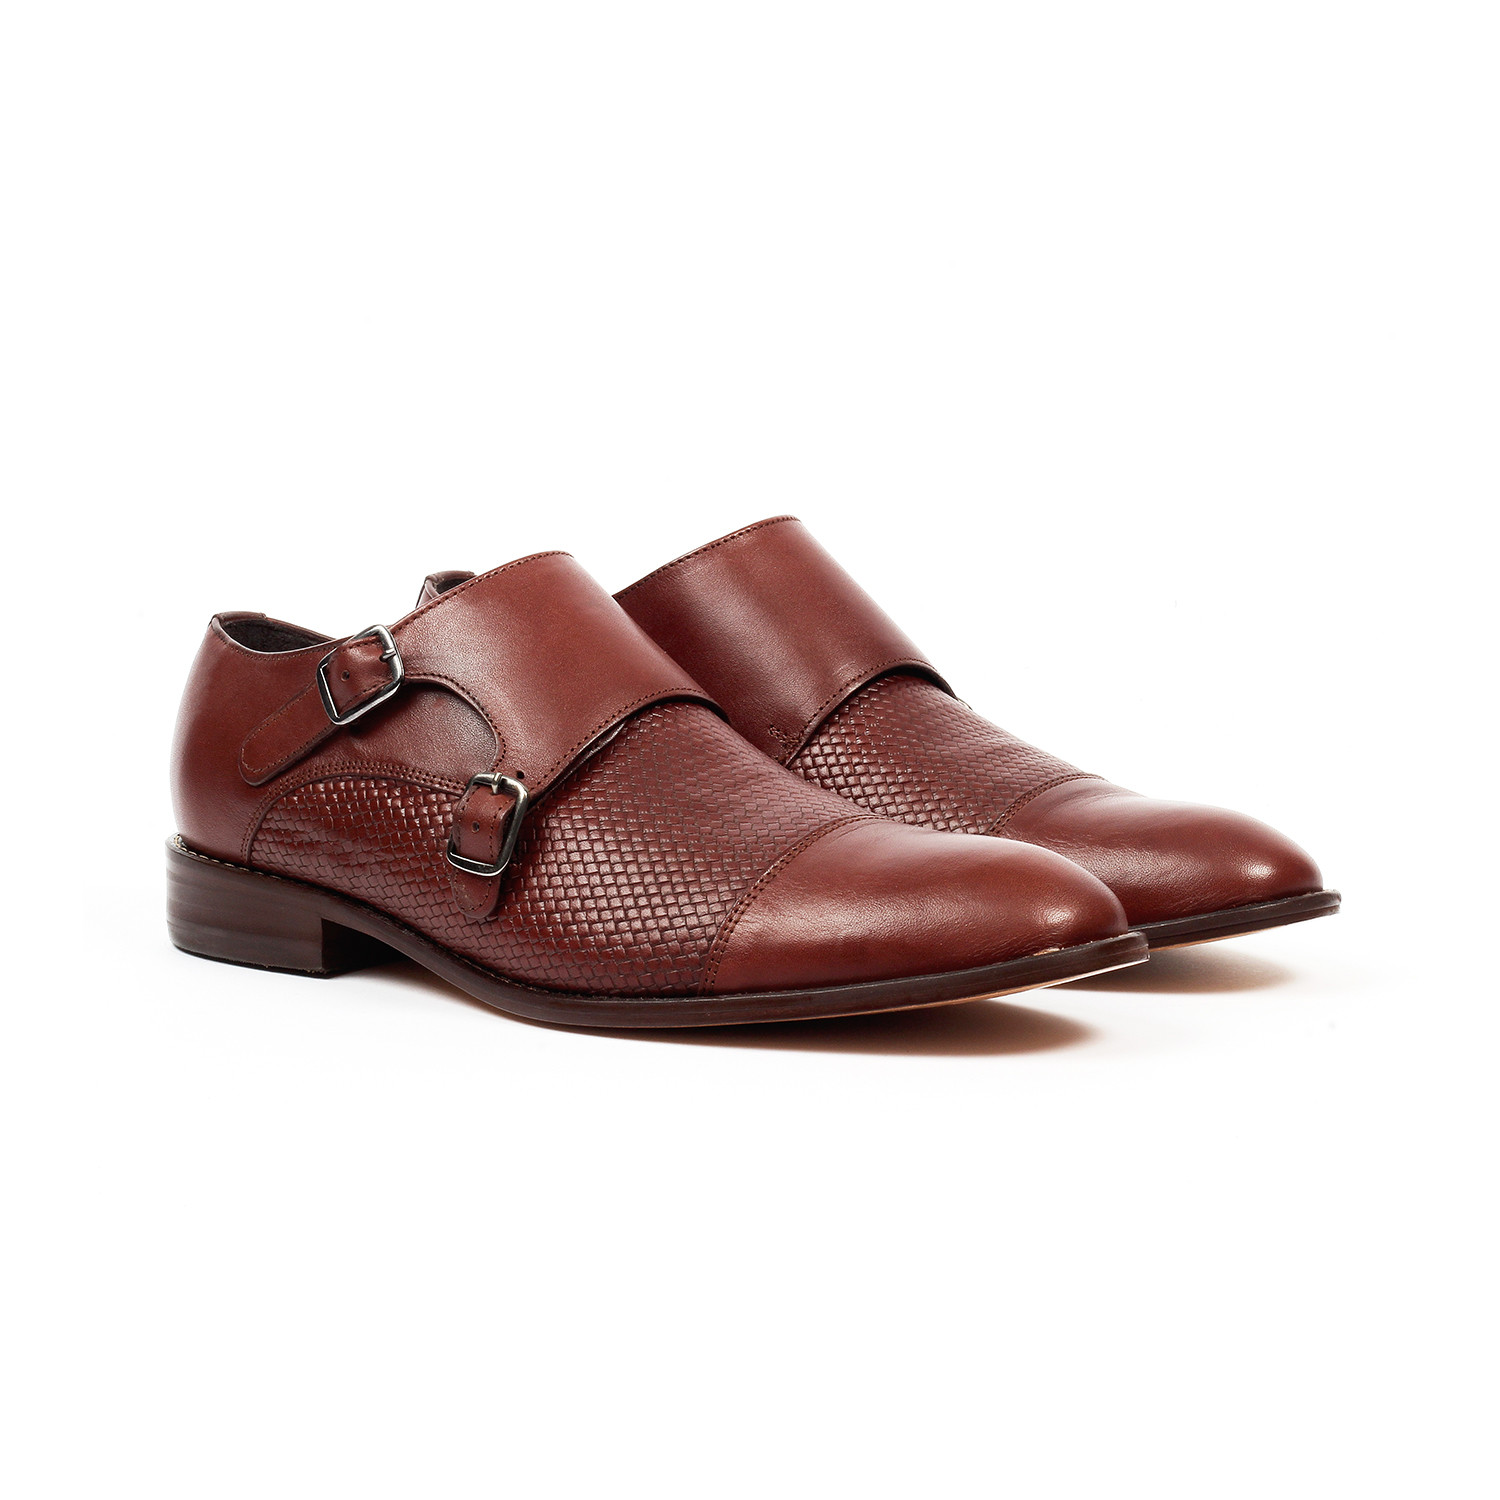 Jack's Andre // Monk Strap Shoes // Dark Brown (US: 6